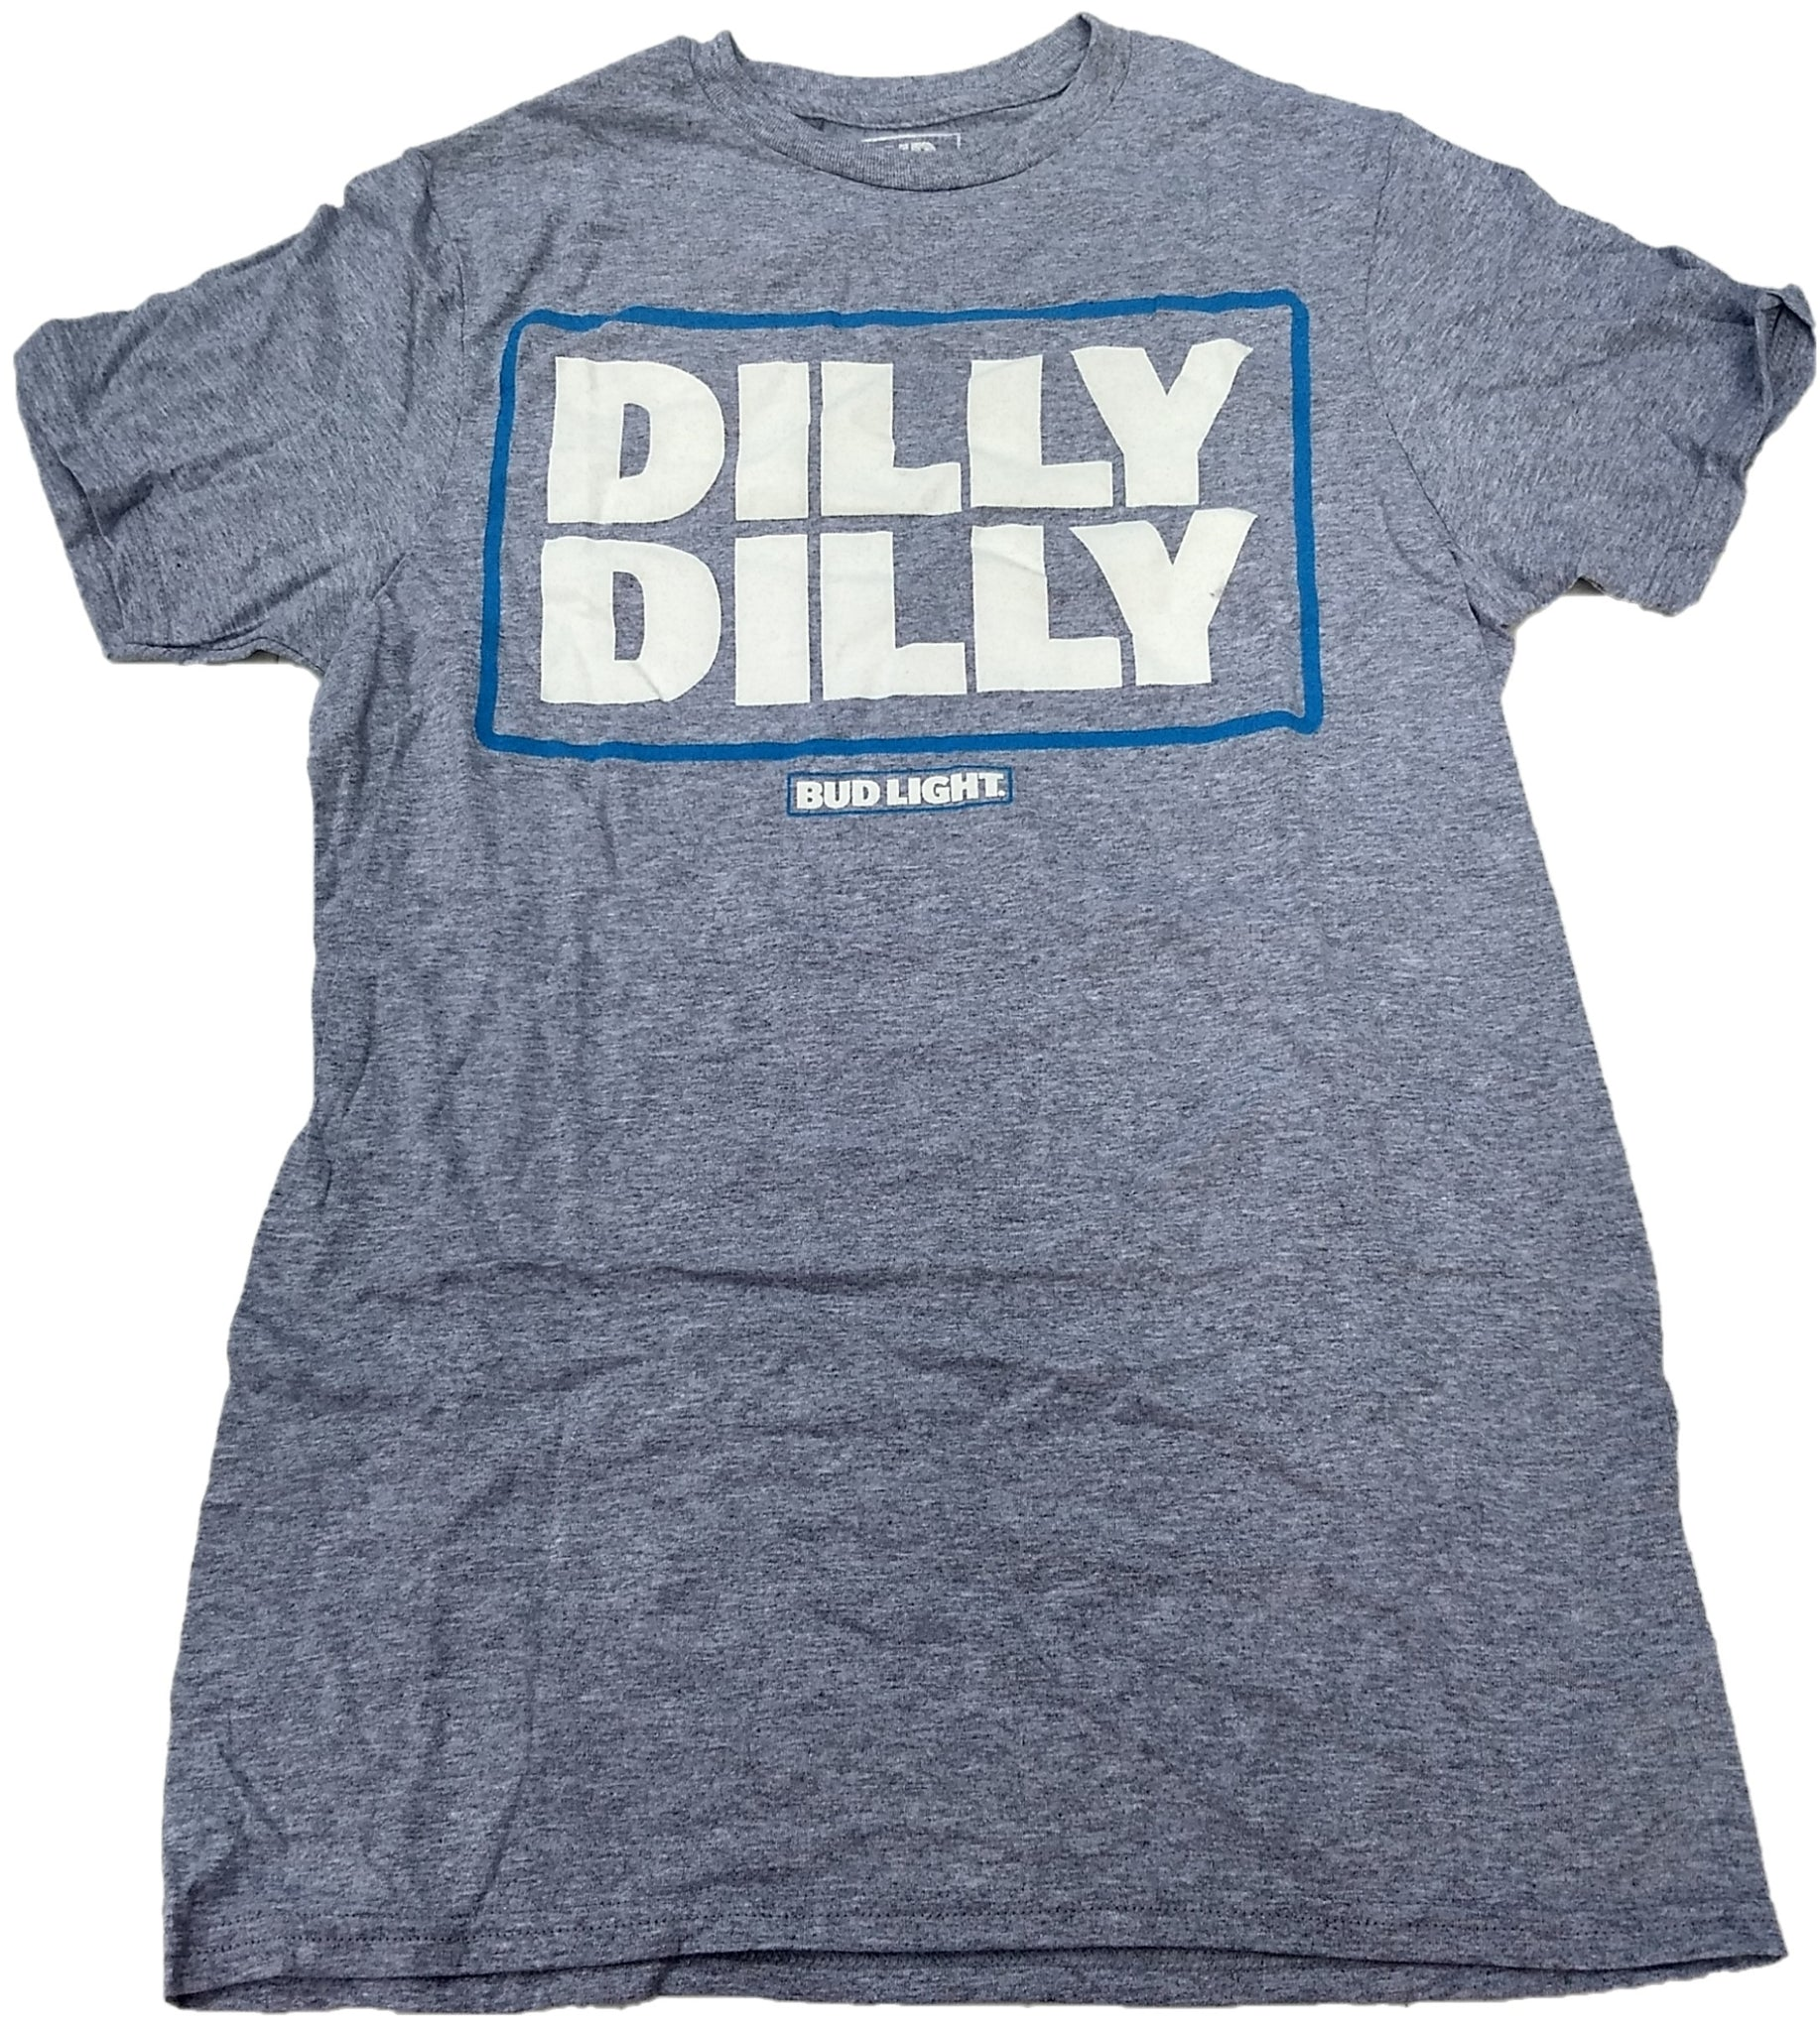 Dilly Dilly Bud Light Budweiser Beer Lager Mens T-Shirt (Grey)